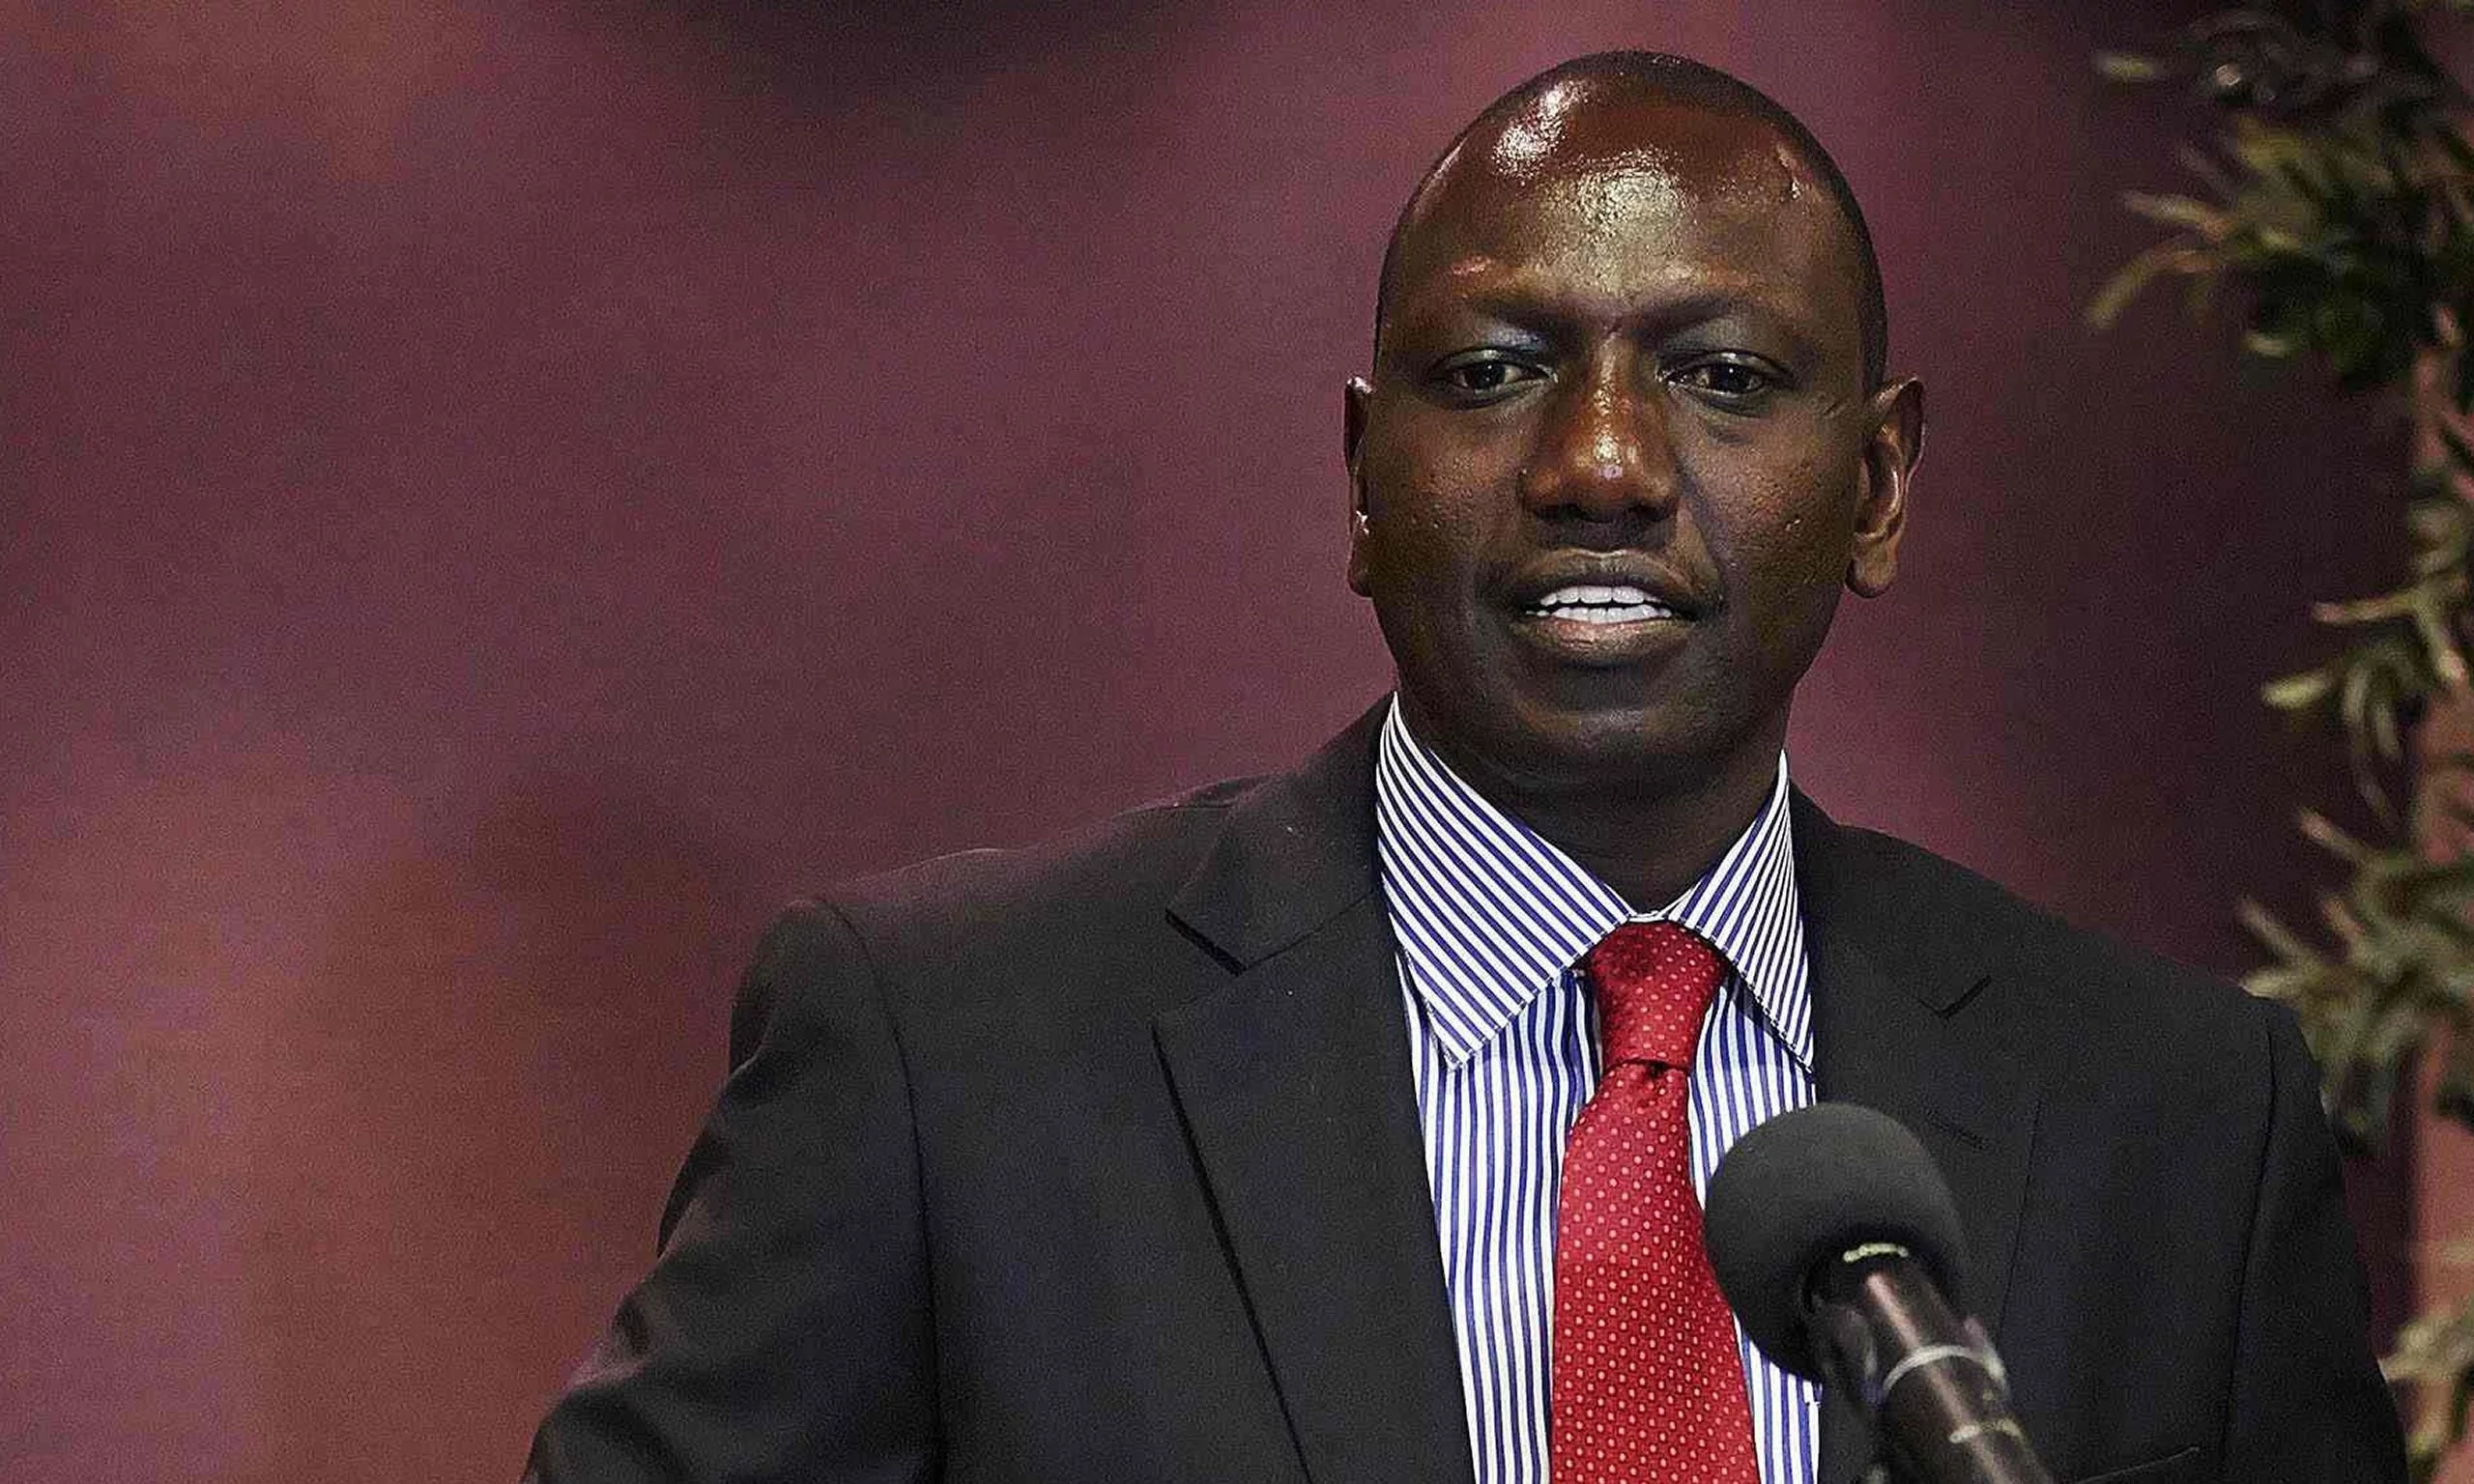 William Ruto's biggest scandals